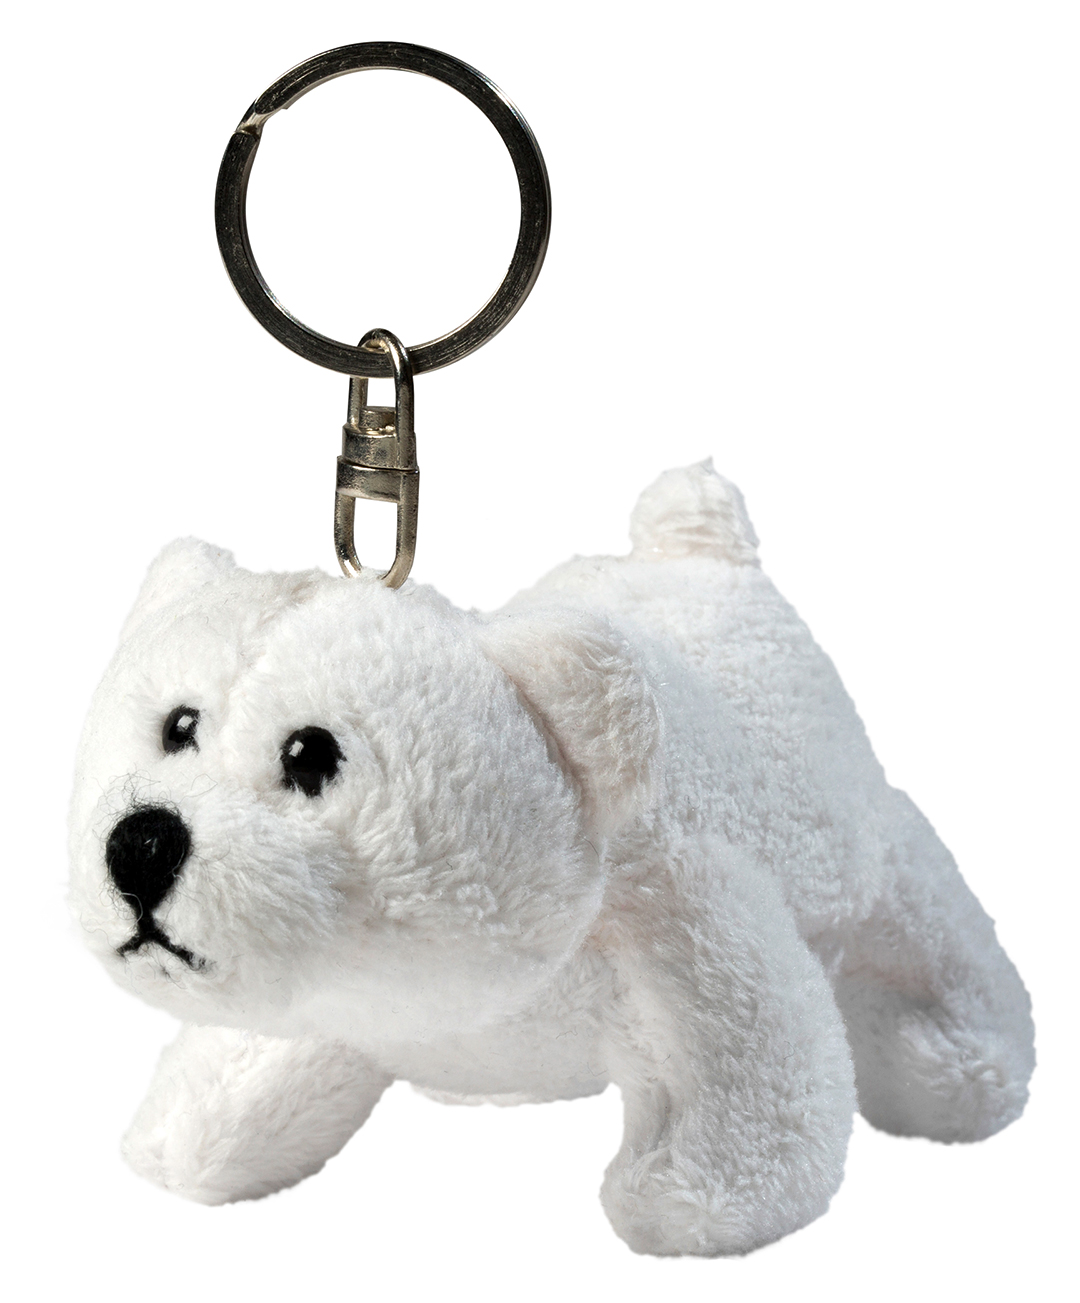 plush polar bear Freddy with key chain